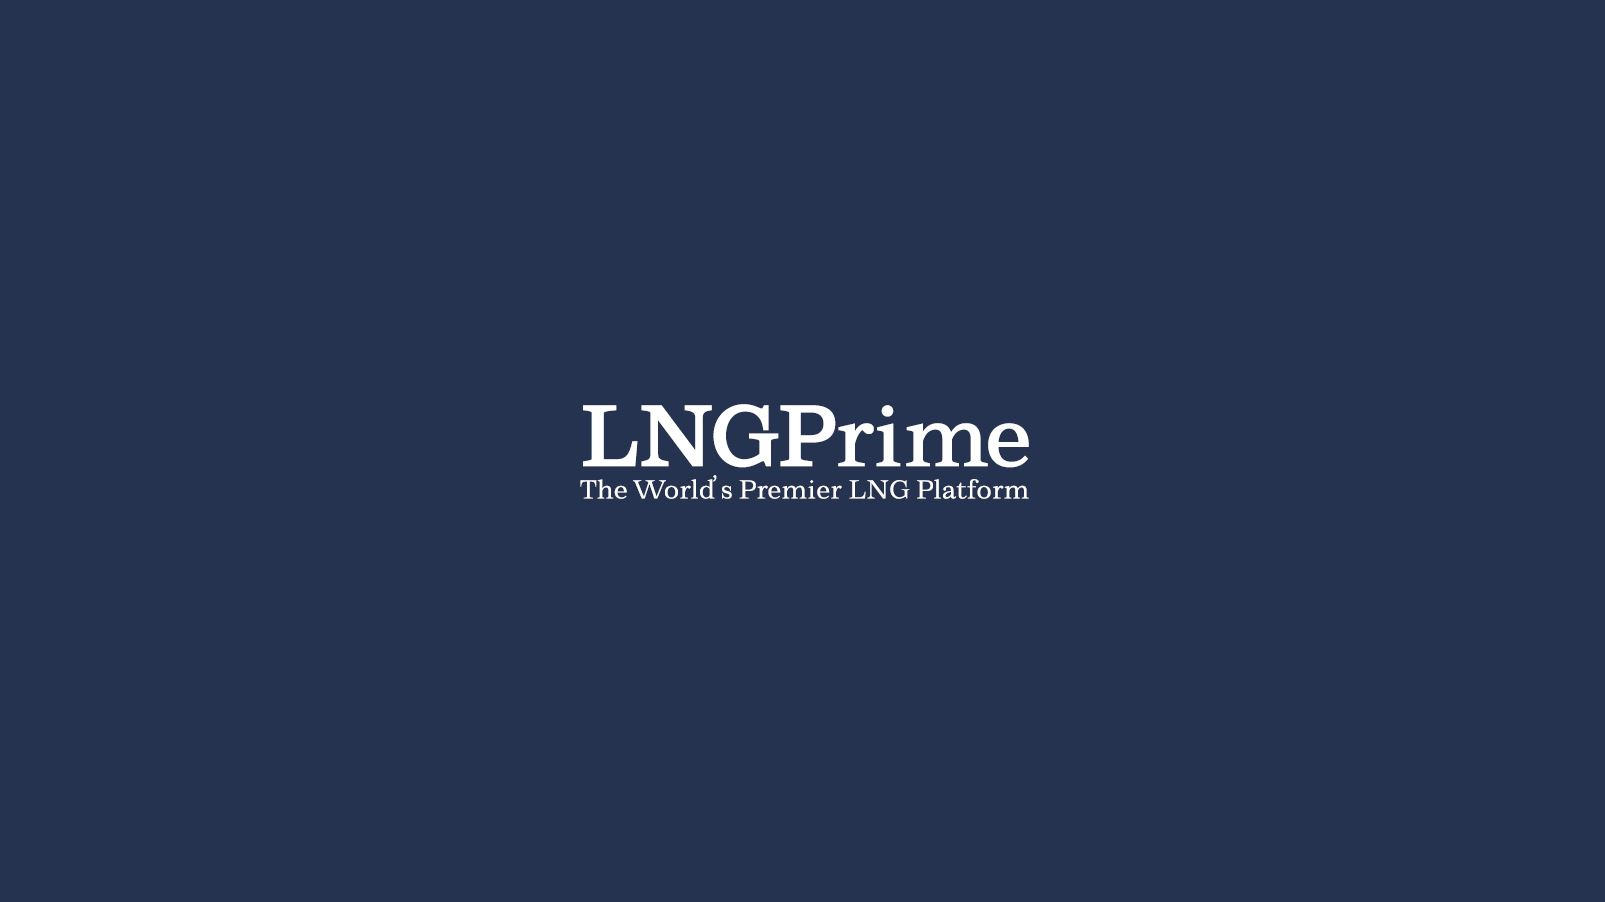 LNG Prime becomes one of the world's top LNG platforms